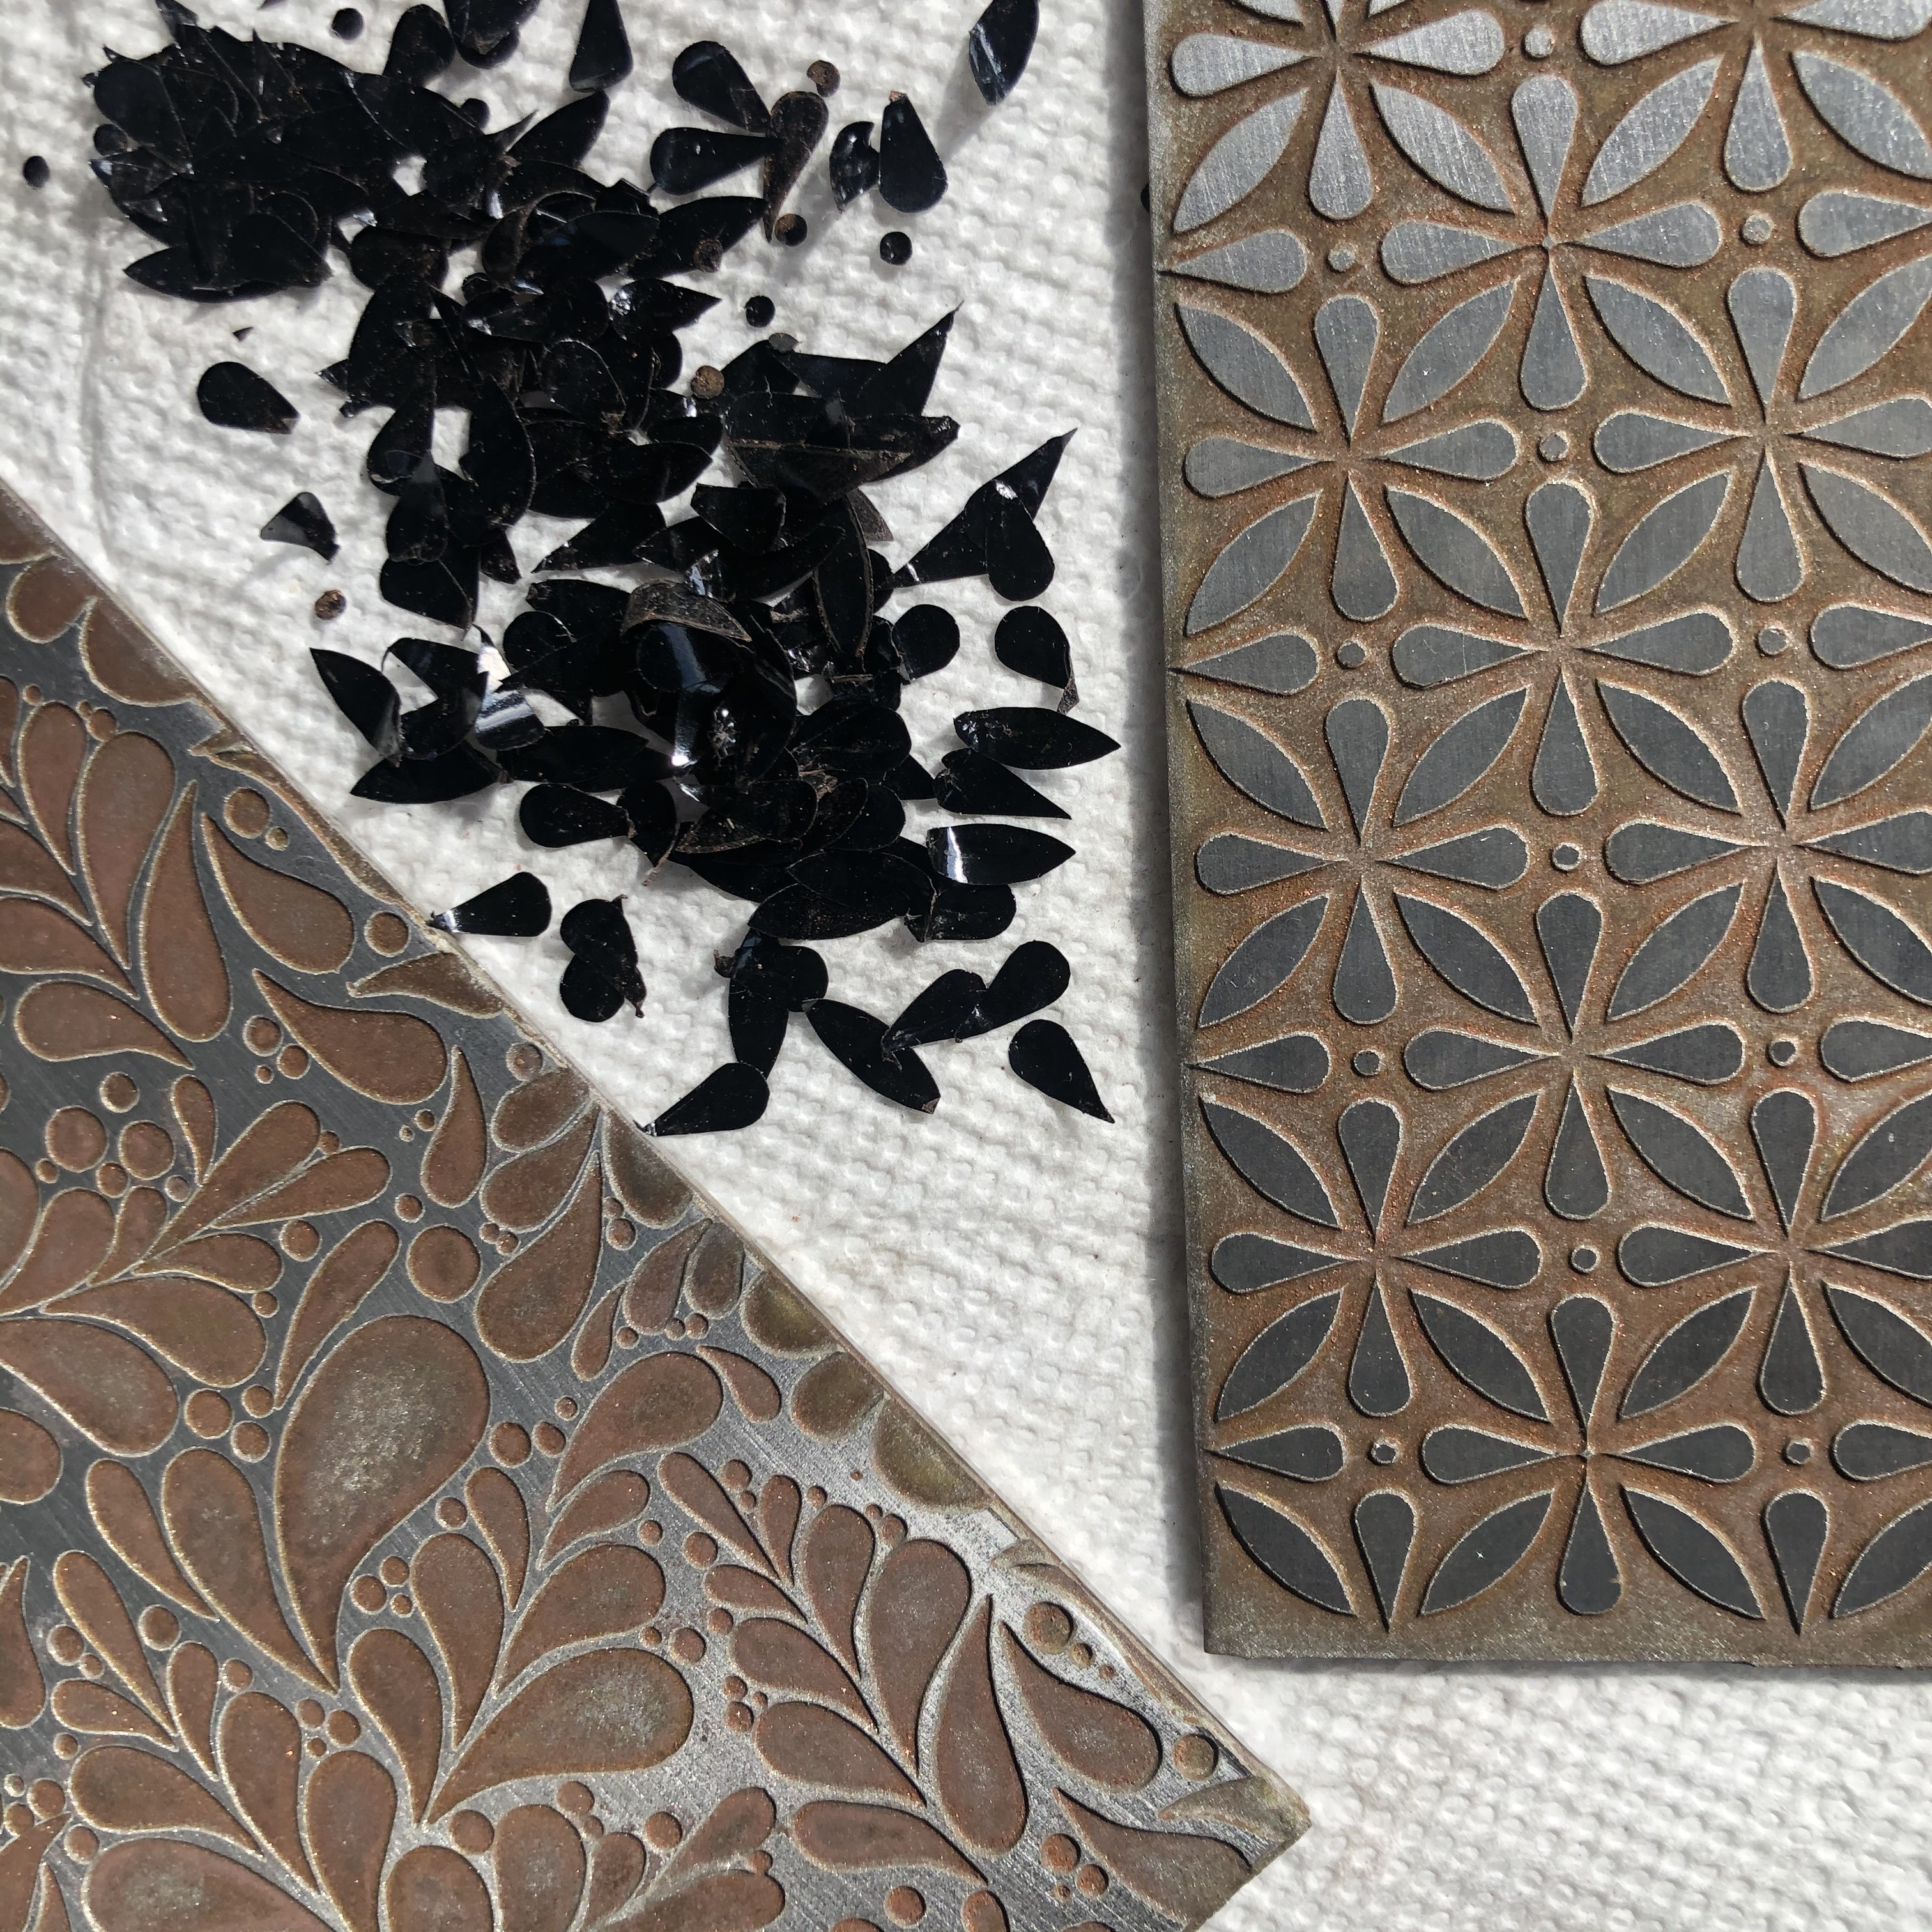 More texture plates